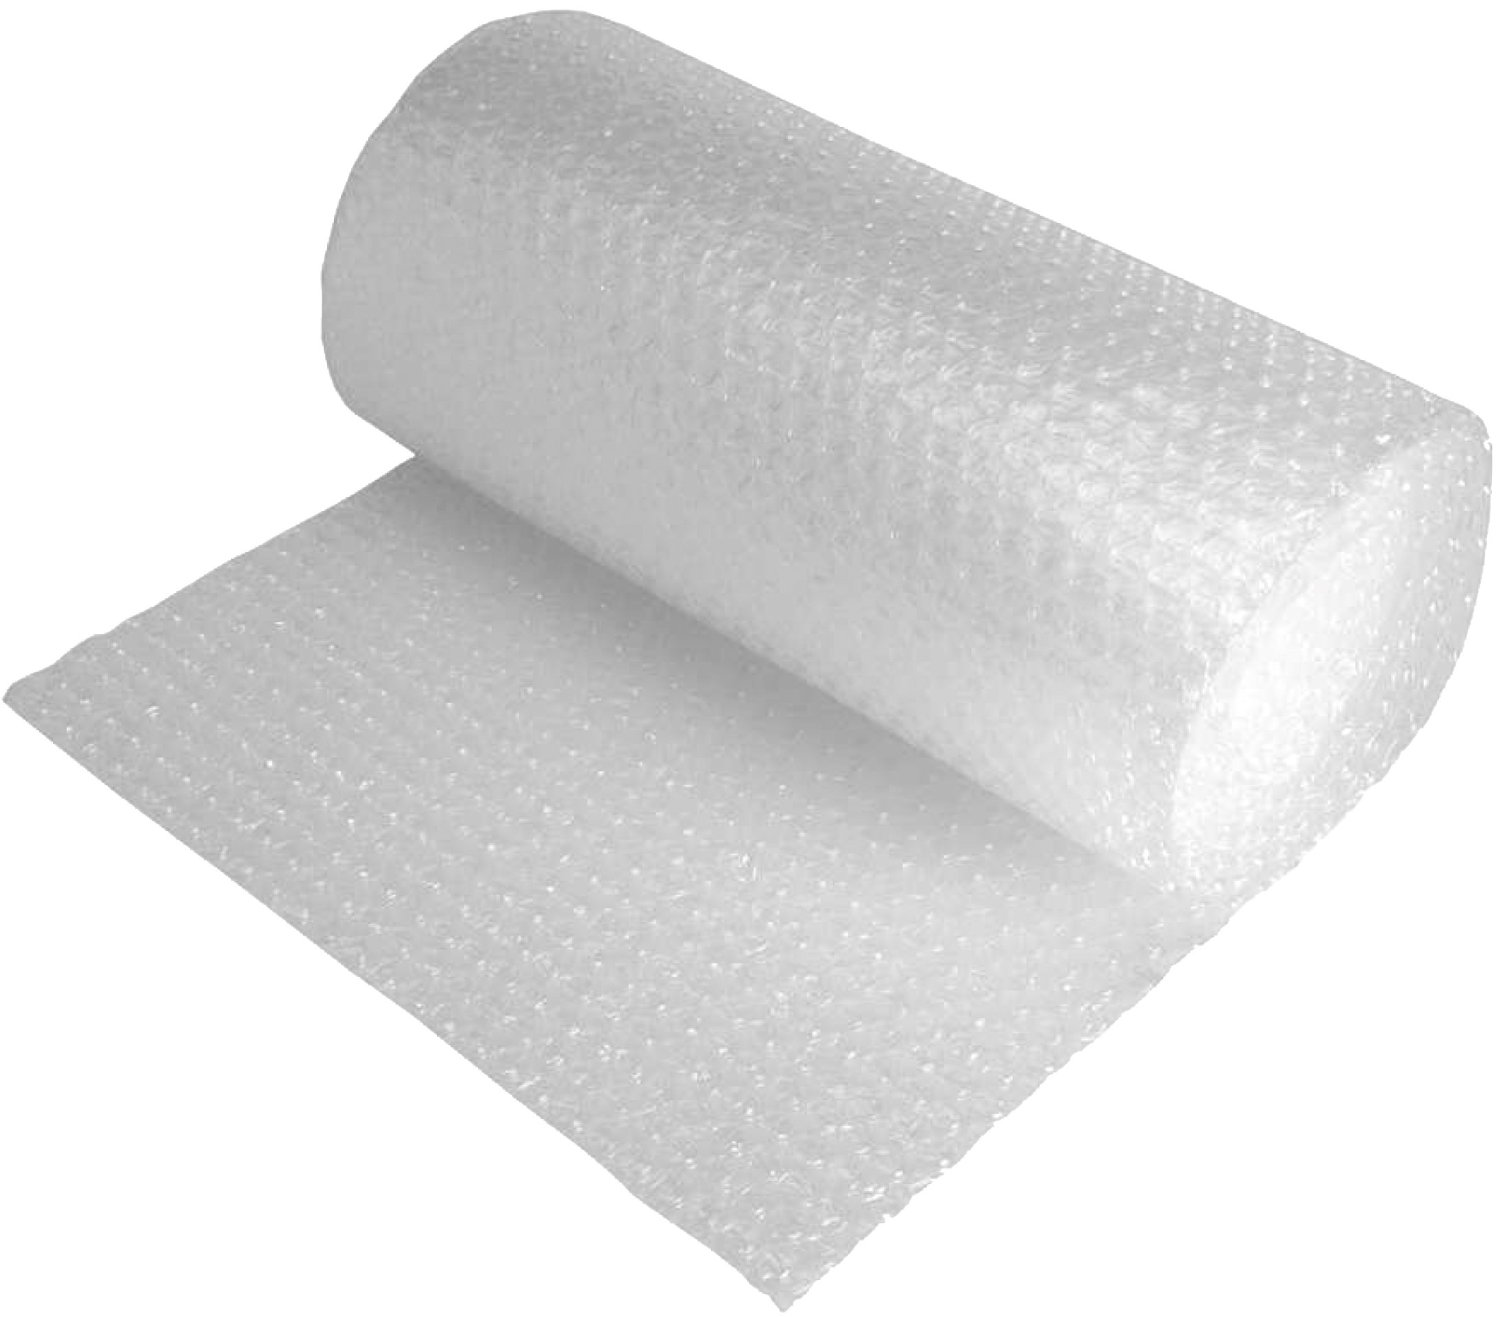 What can Bubble Wrap do for you?